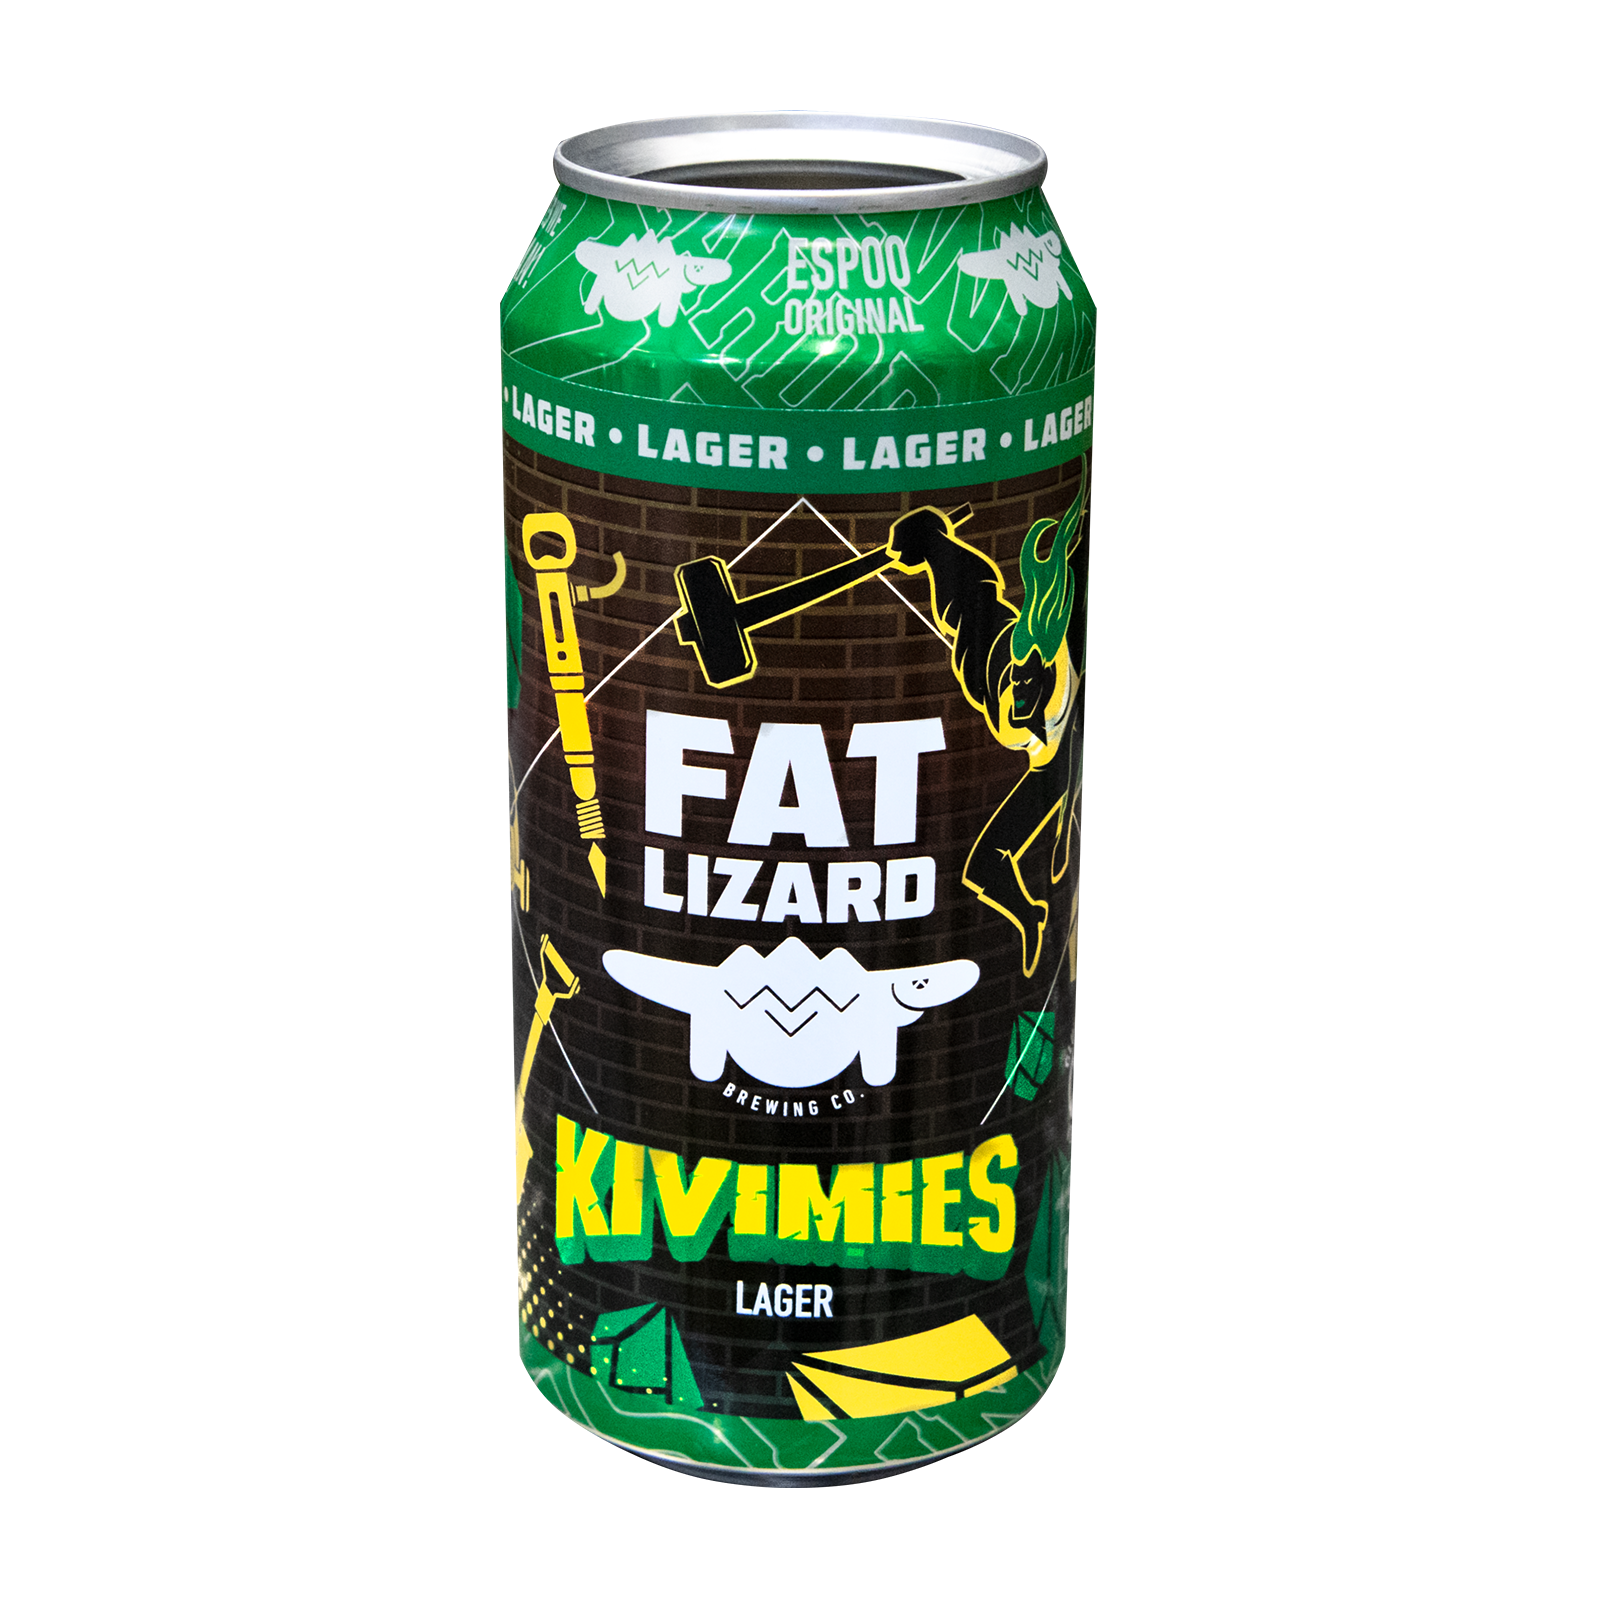 Kivimies Lager 5,0% (G) - 0,44l can